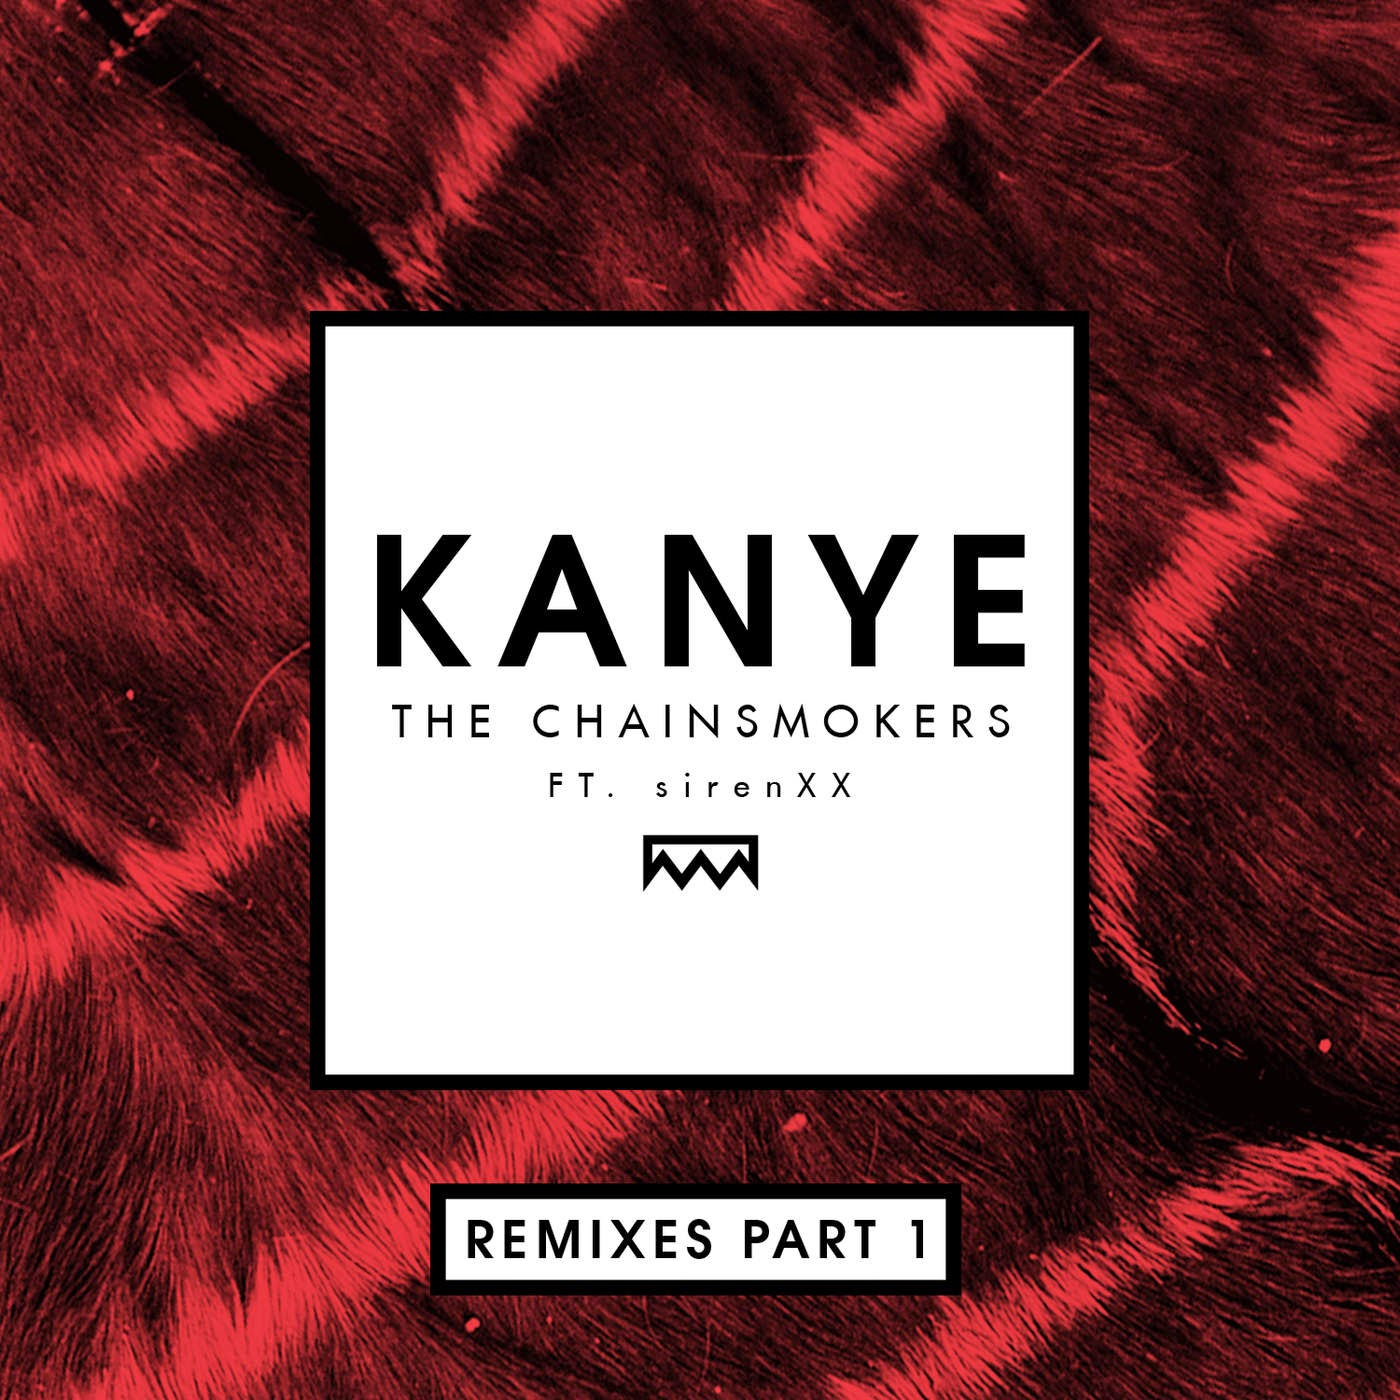 The Chainsmokers - Kanye (Remixes, Pt. 1) [feat. sirenXX] - Single Cover